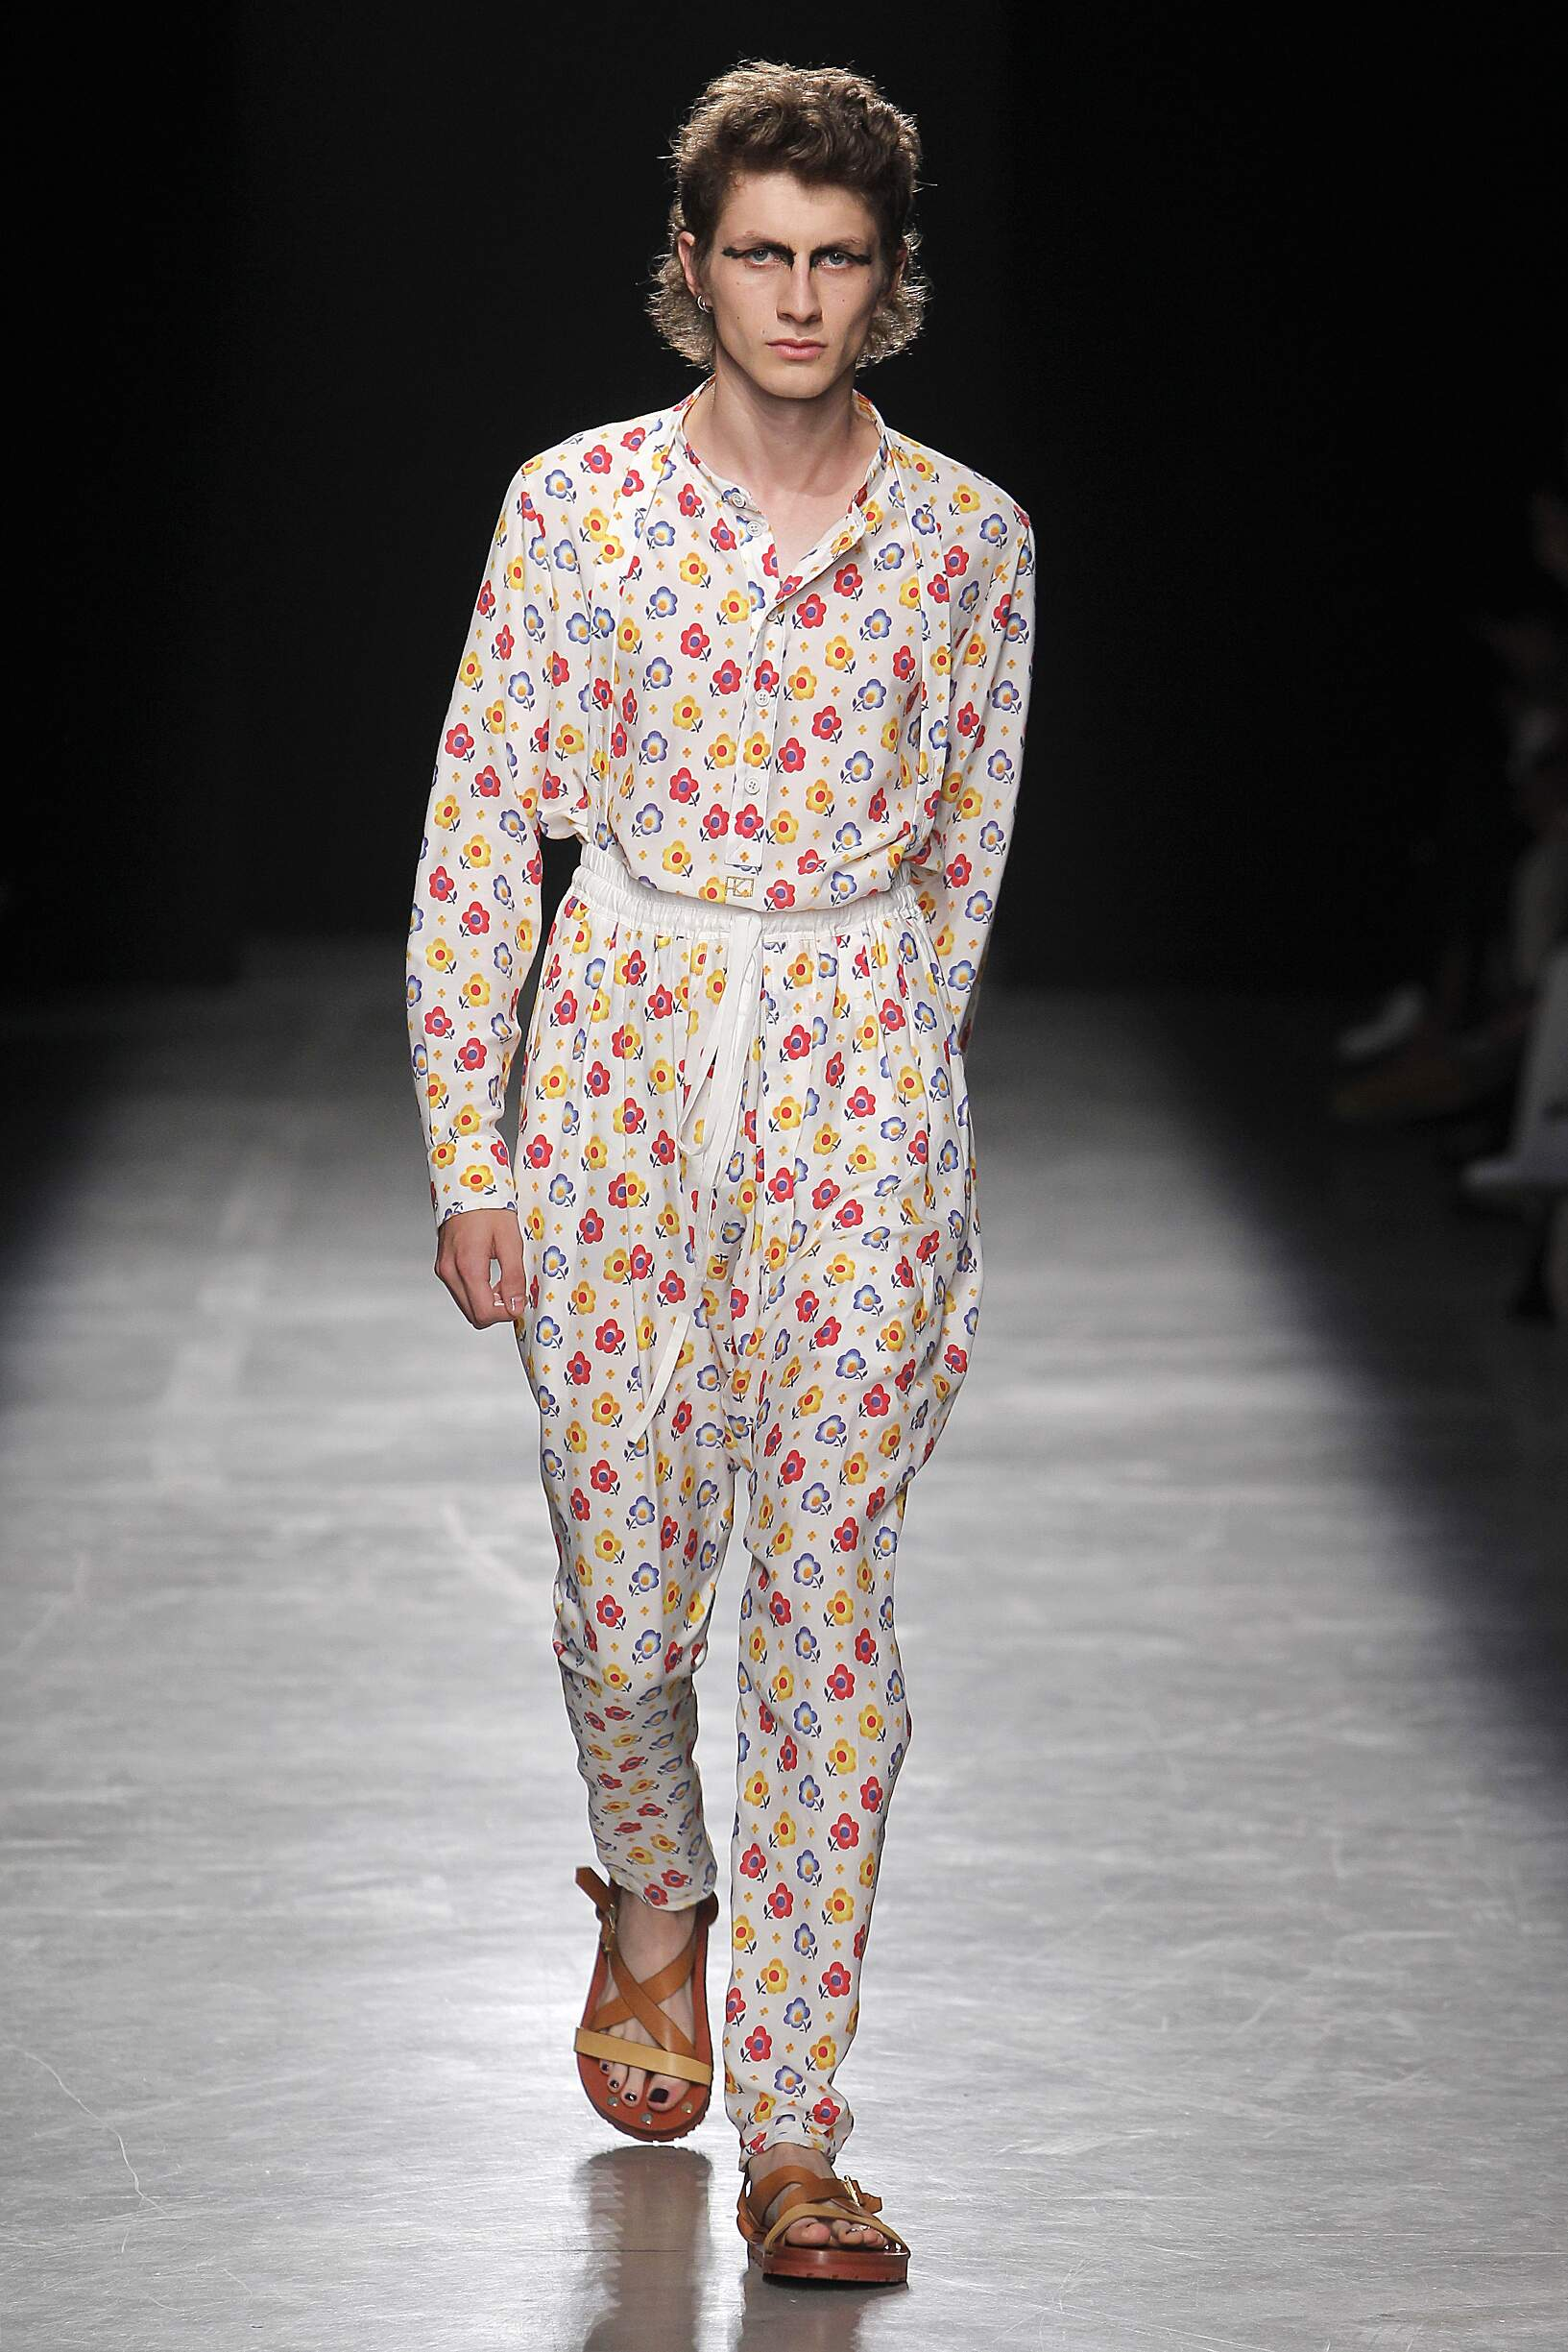 Man SS 2017 Fashion Show Andreas Kronthaler for Vivienne Westwood